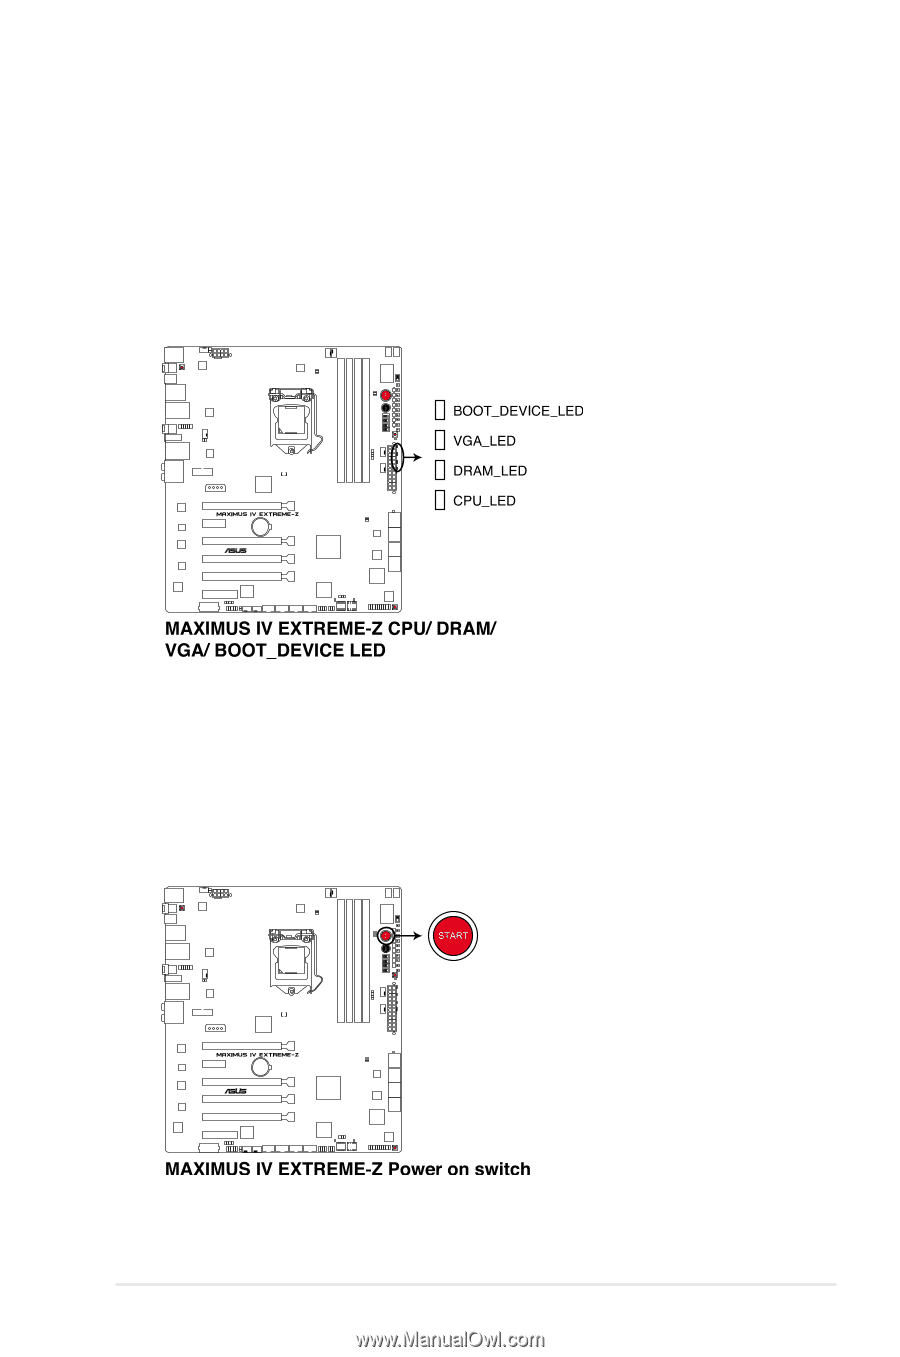 Asus MAXIMUS IV EXTREME-Z | User Manual - Page 57